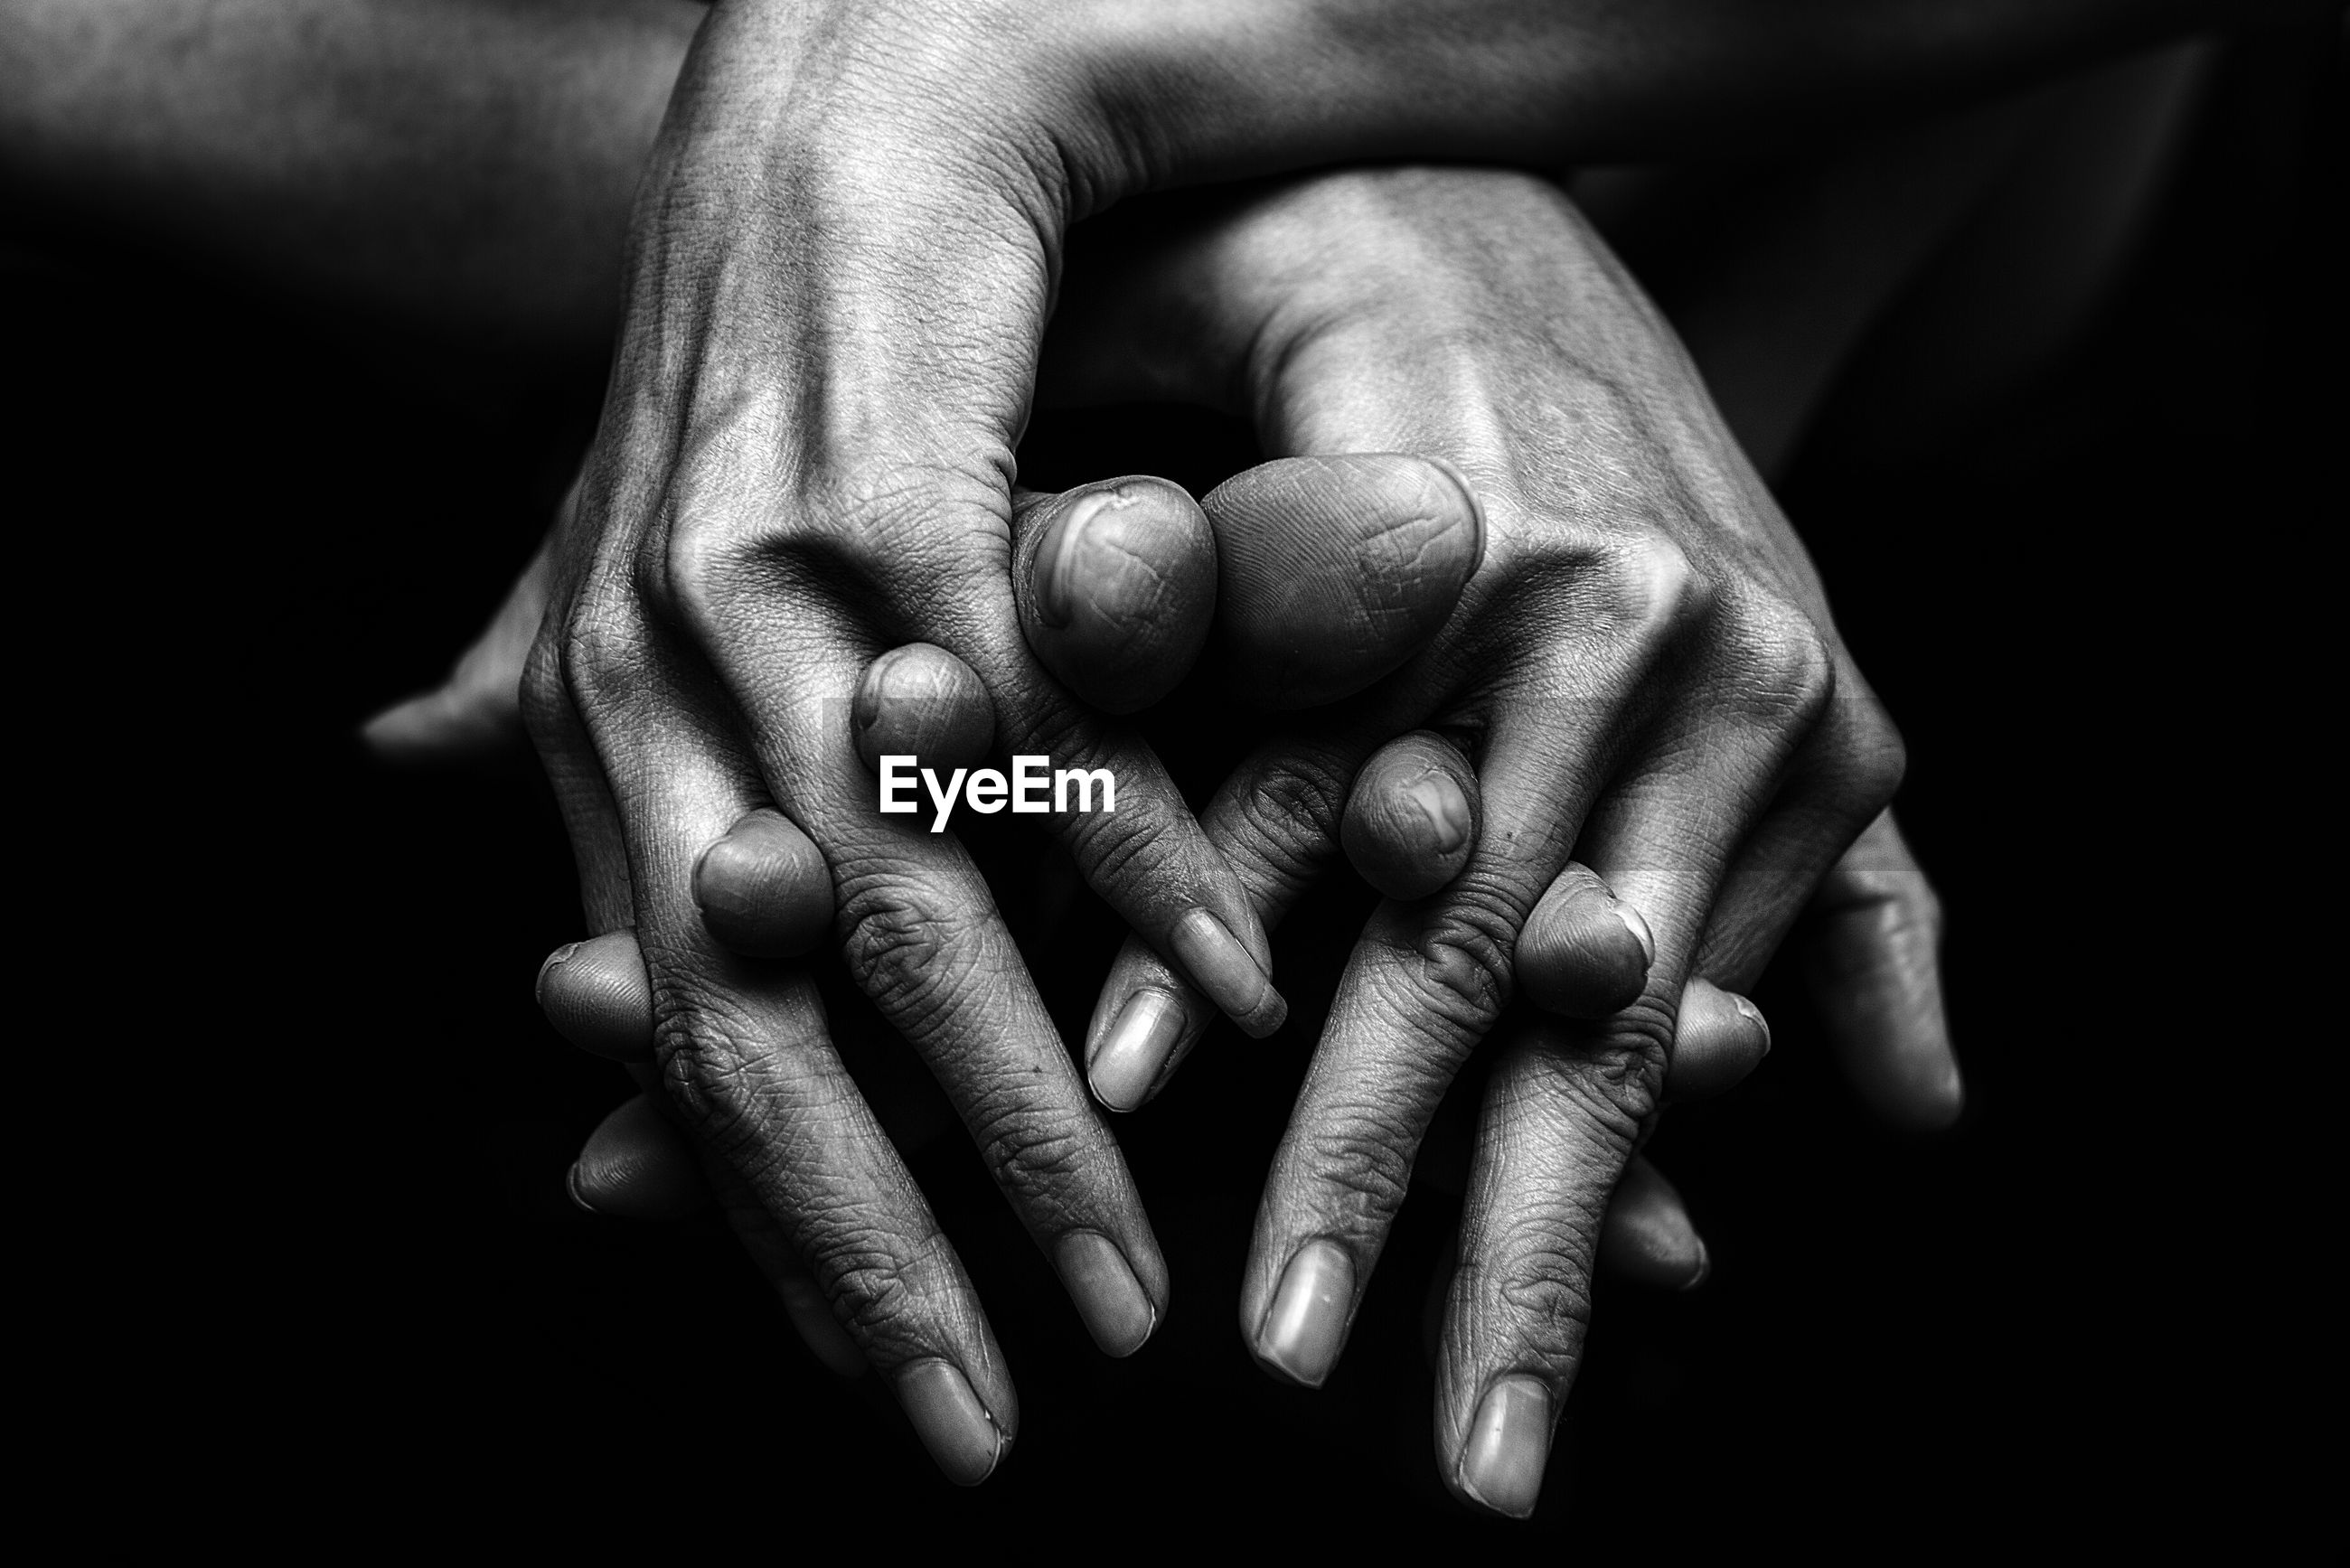 Cropped image of hands against black background